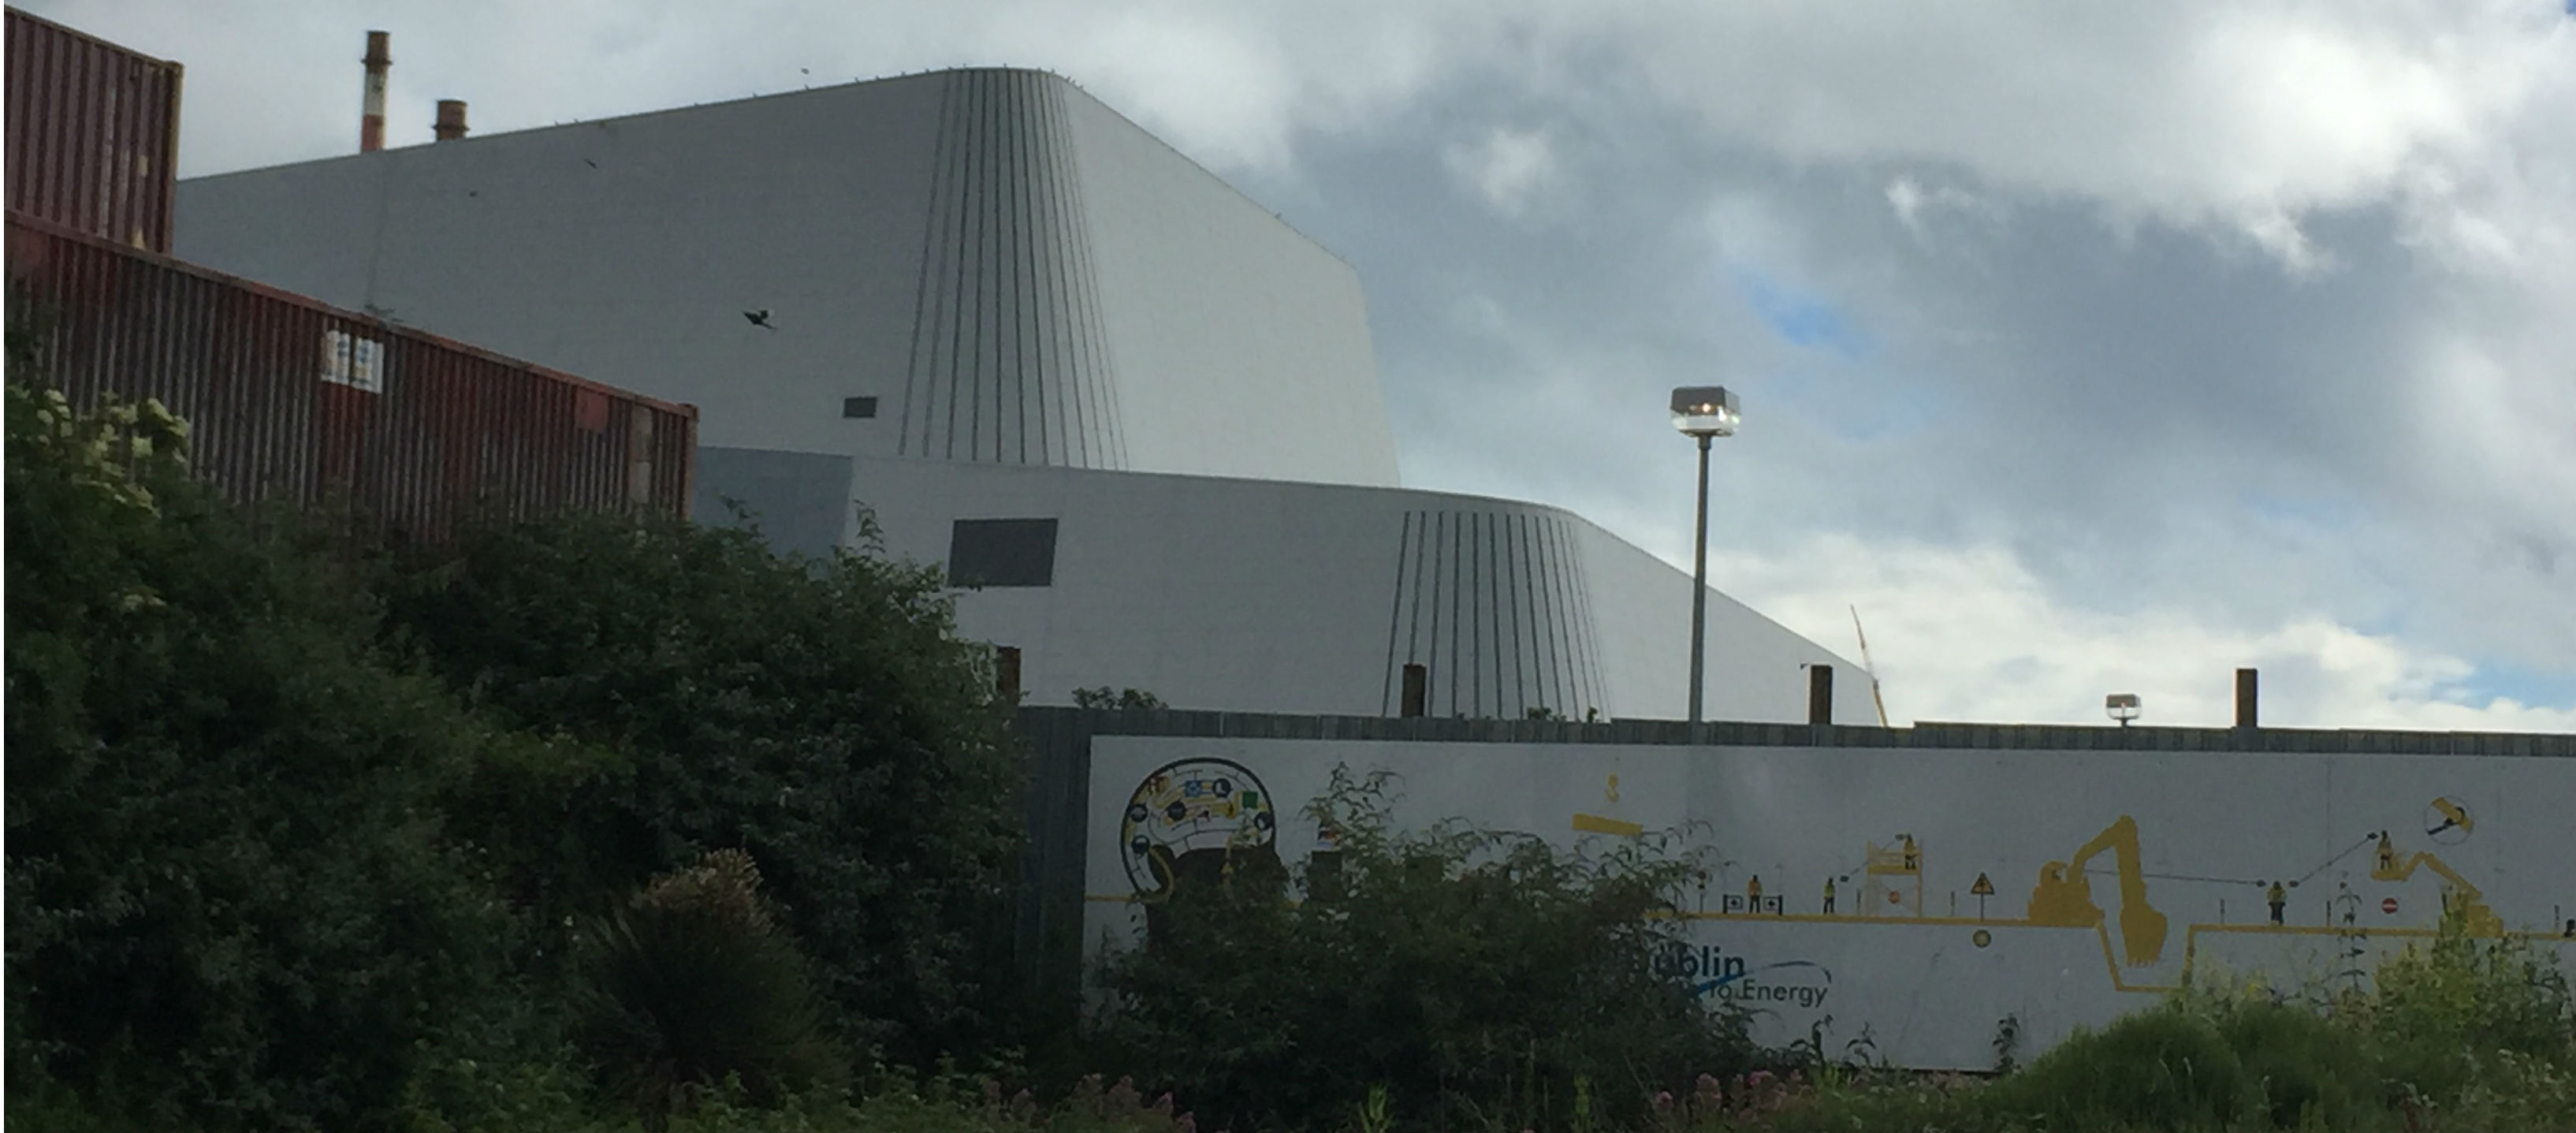 Councillors Ask About Poolbeg Incinerator Cladding